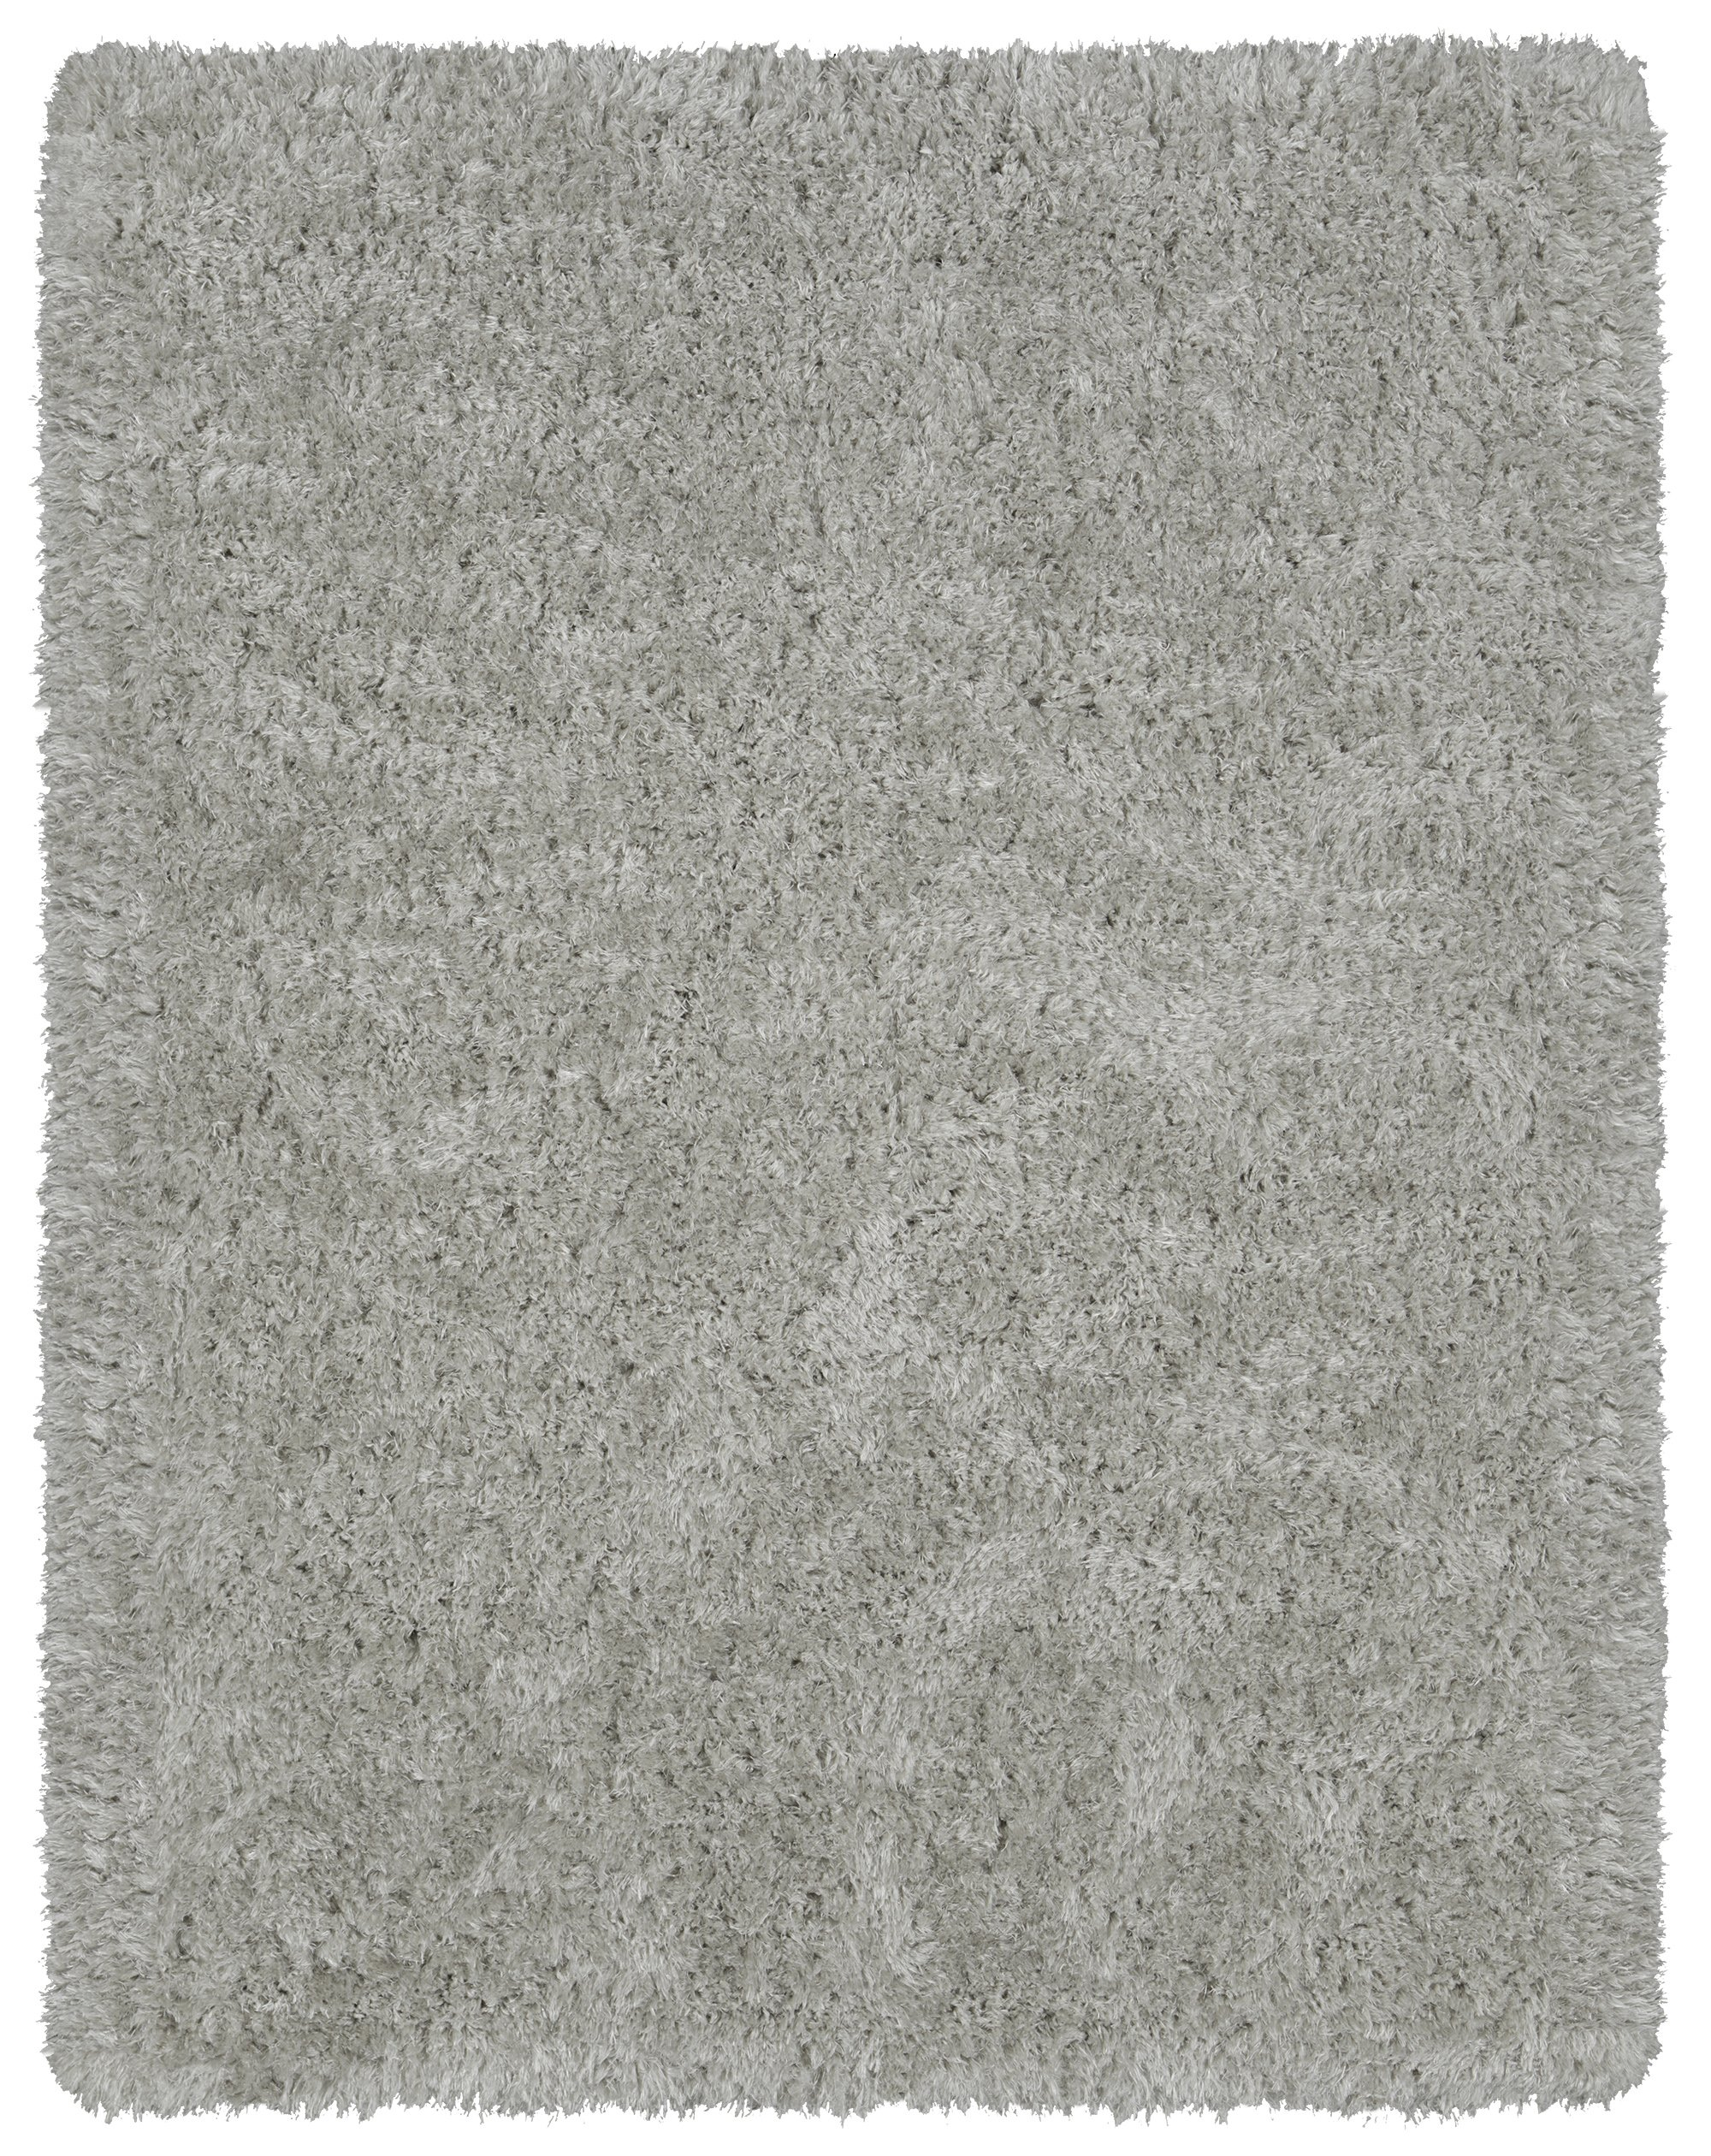 Ottomanson Flokati Collection Faux Sheepskin Shag Area Rug, 5'3 X 7', Grey